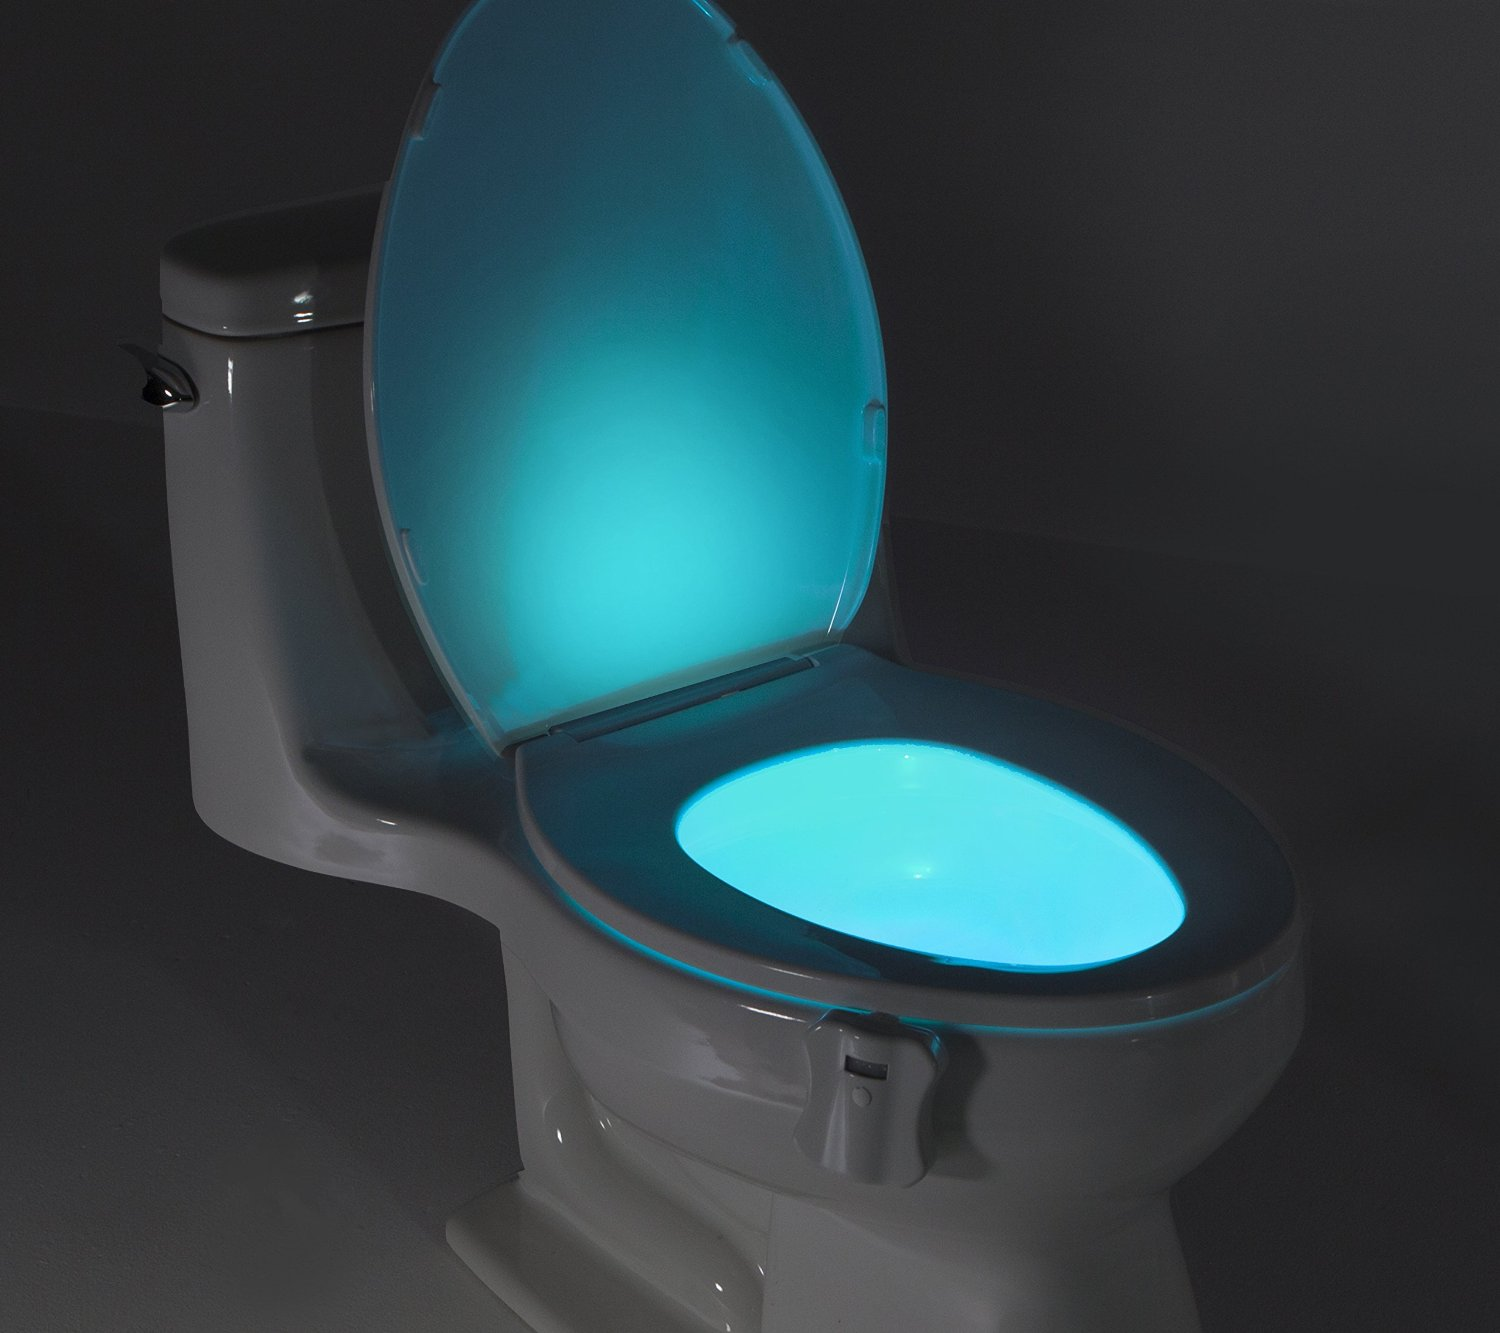 Glowbowl Motion Activated Toilet Nightlight Go For Dope